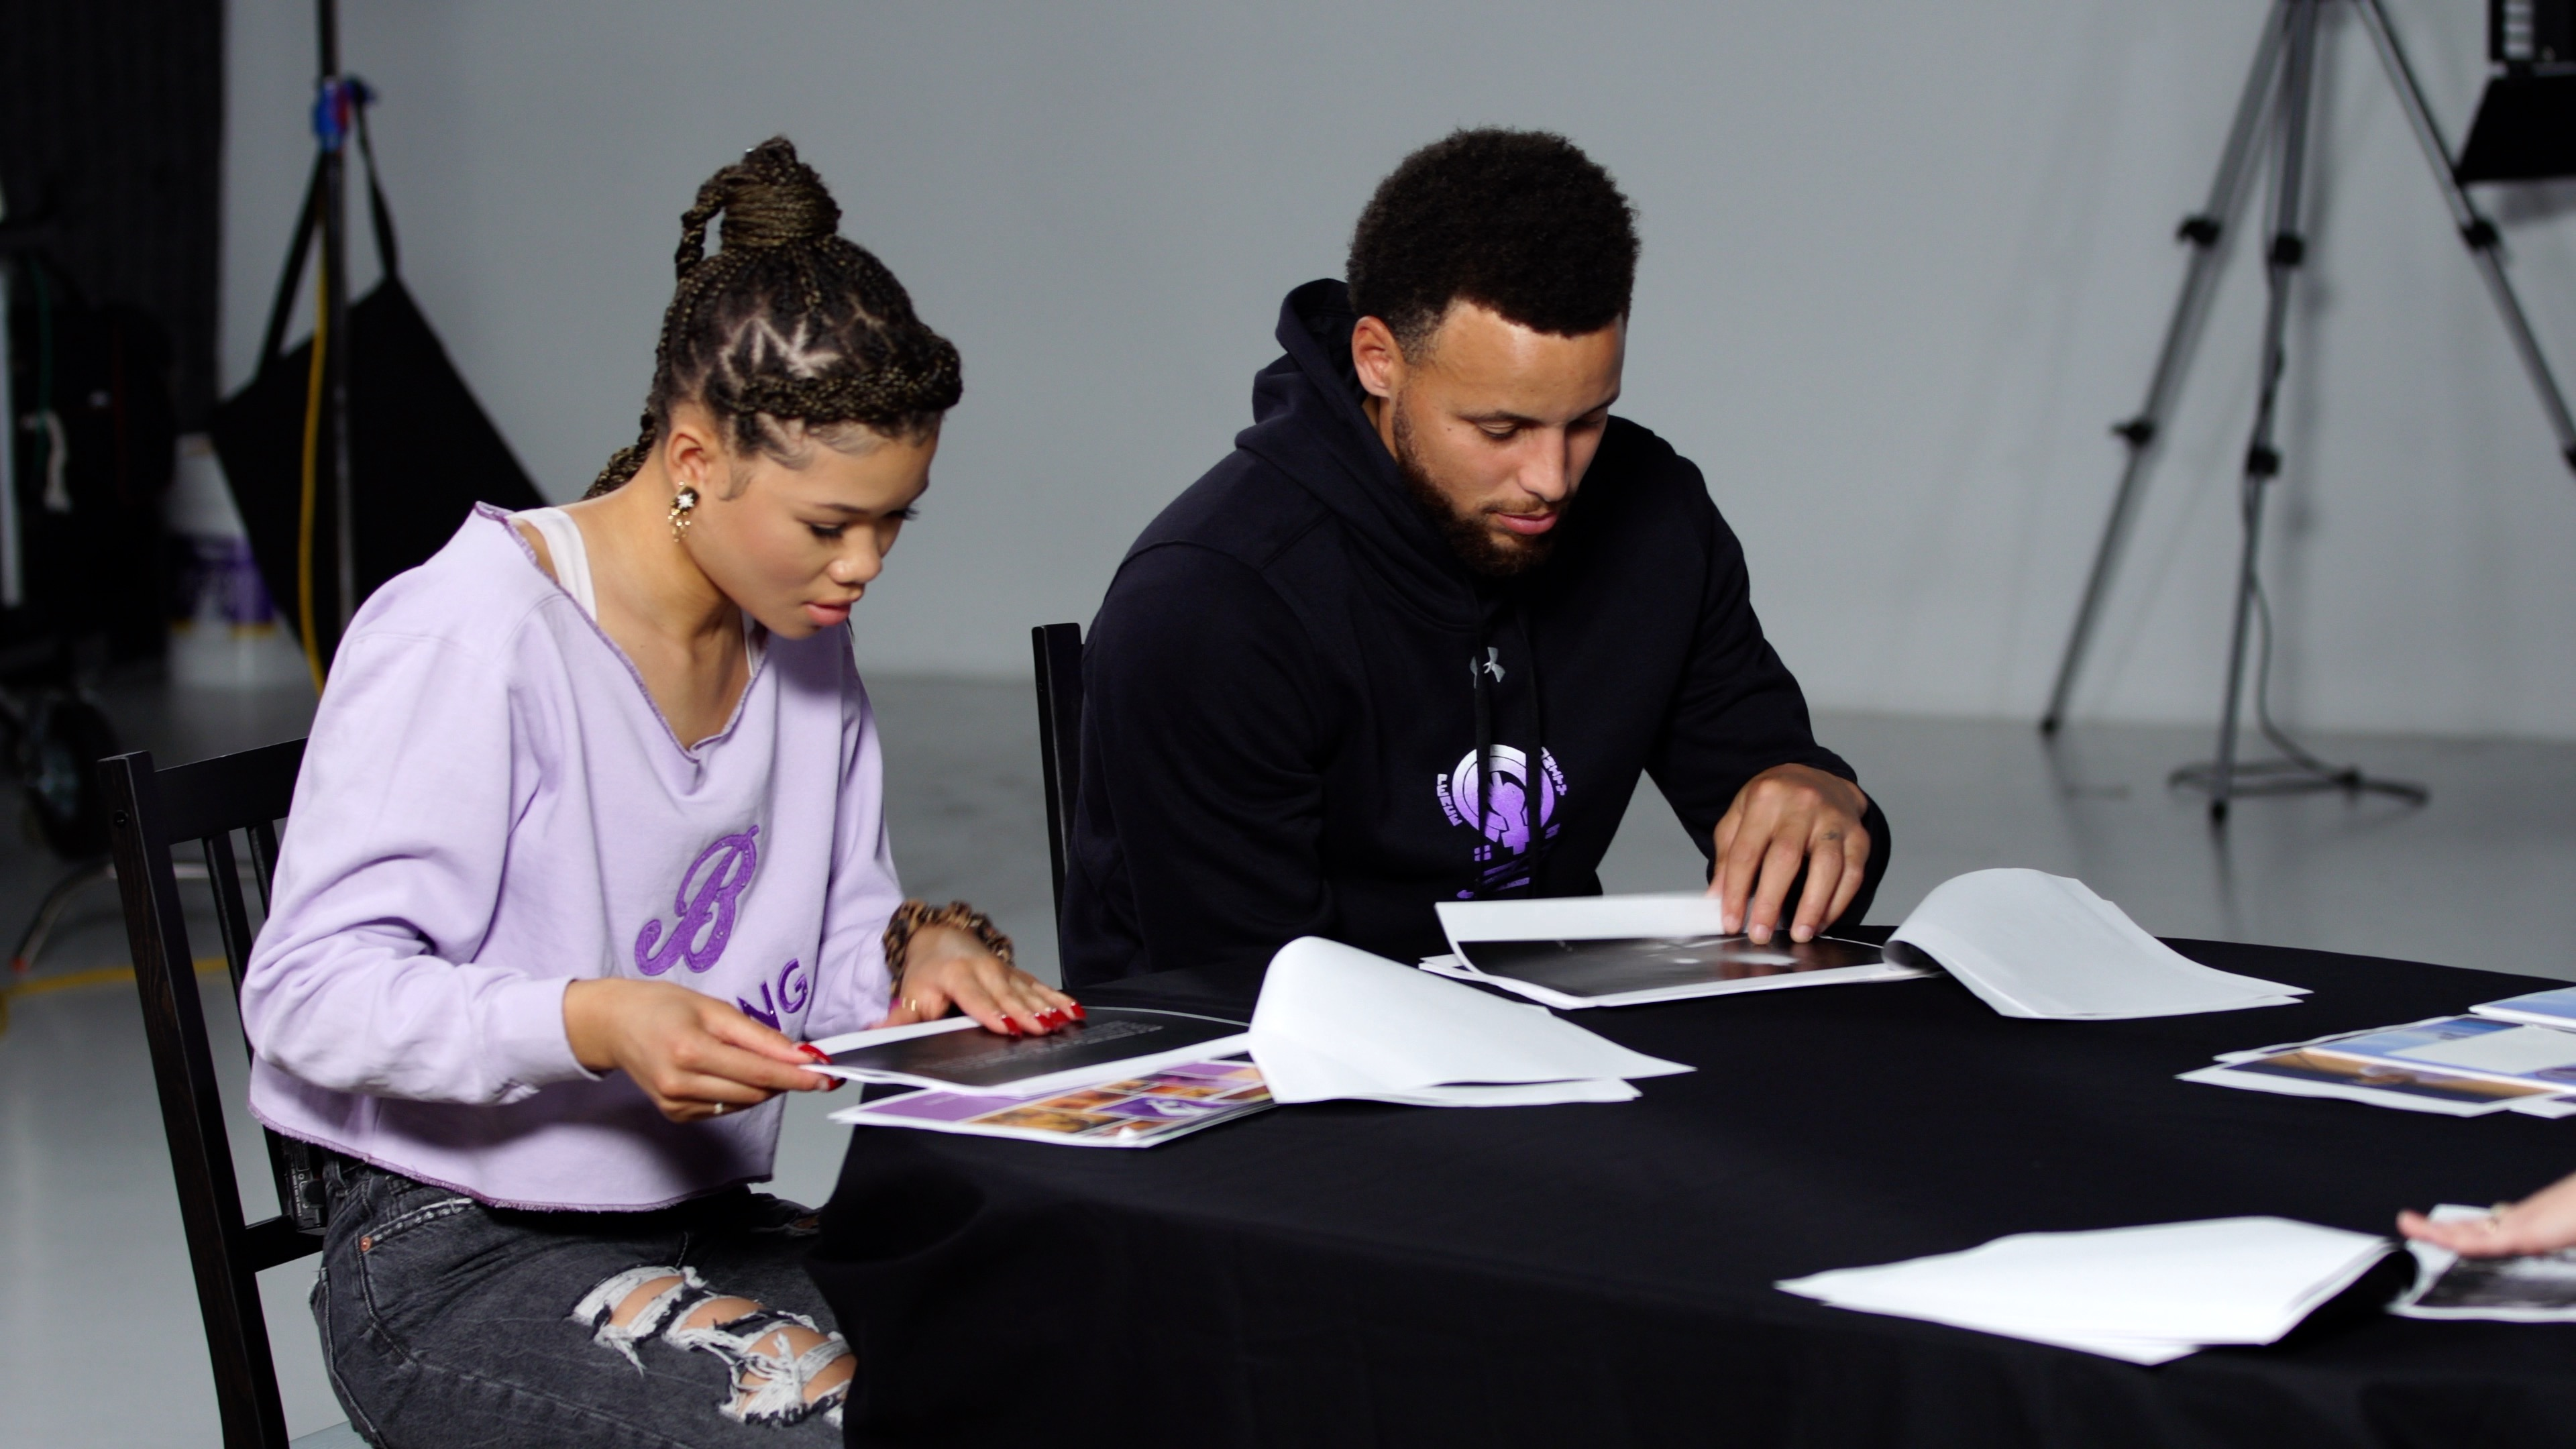 Stephen Curry and Storm Reid work on the Curry 7 Bamazing shoe.